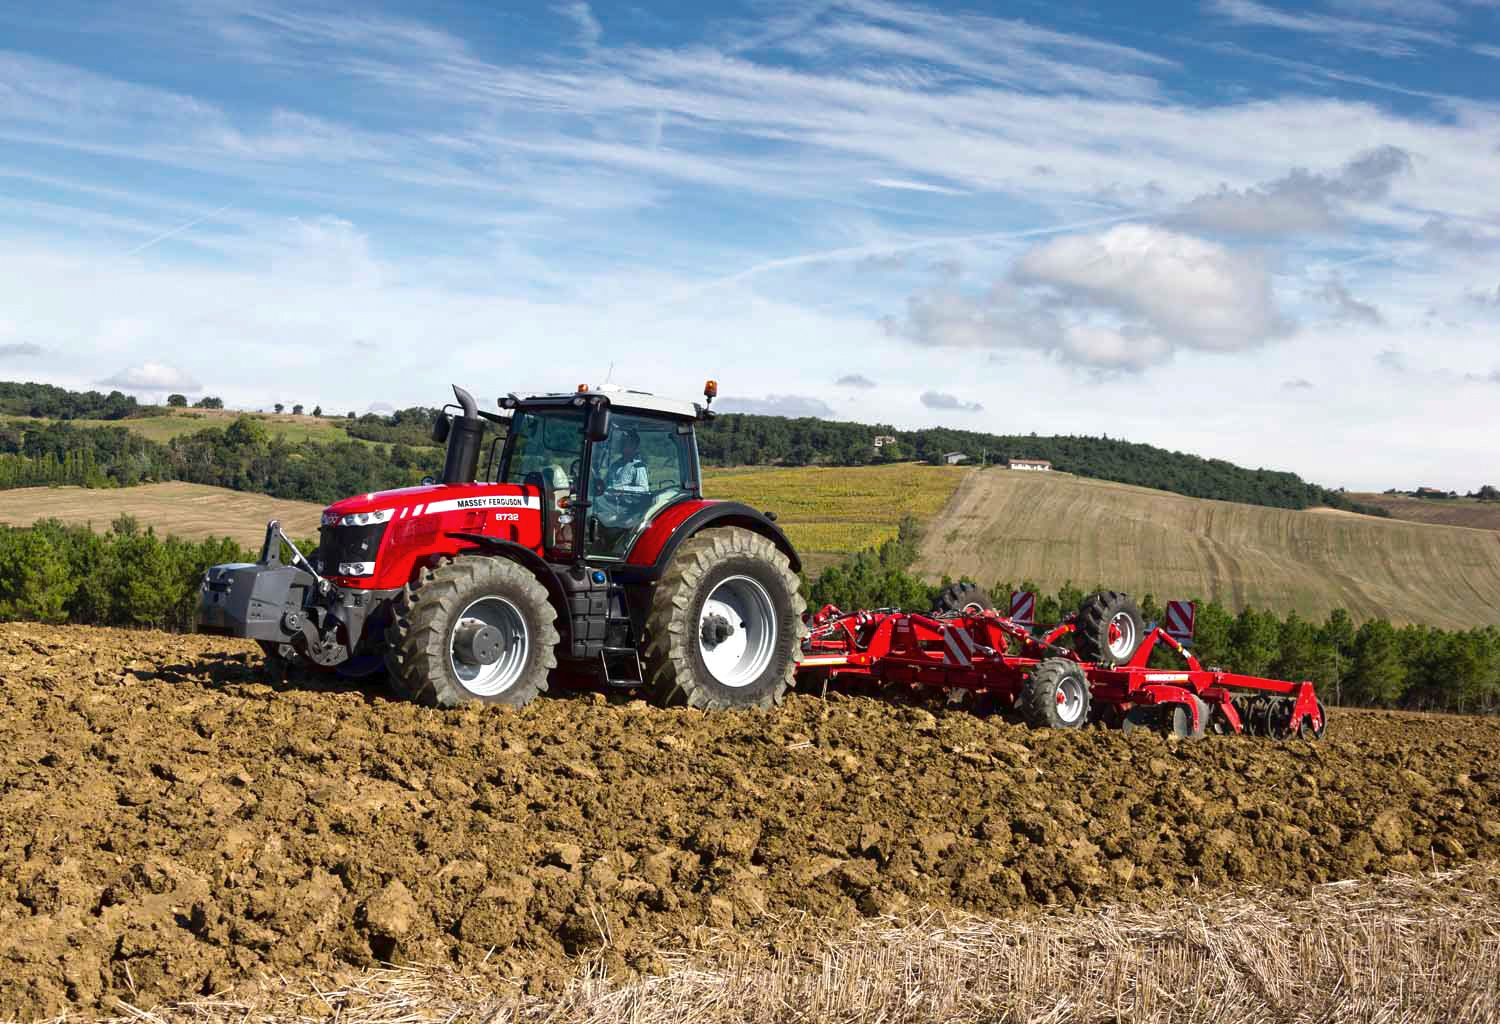 New Massey Ferguson 8700 Series High Horsepower Tractors